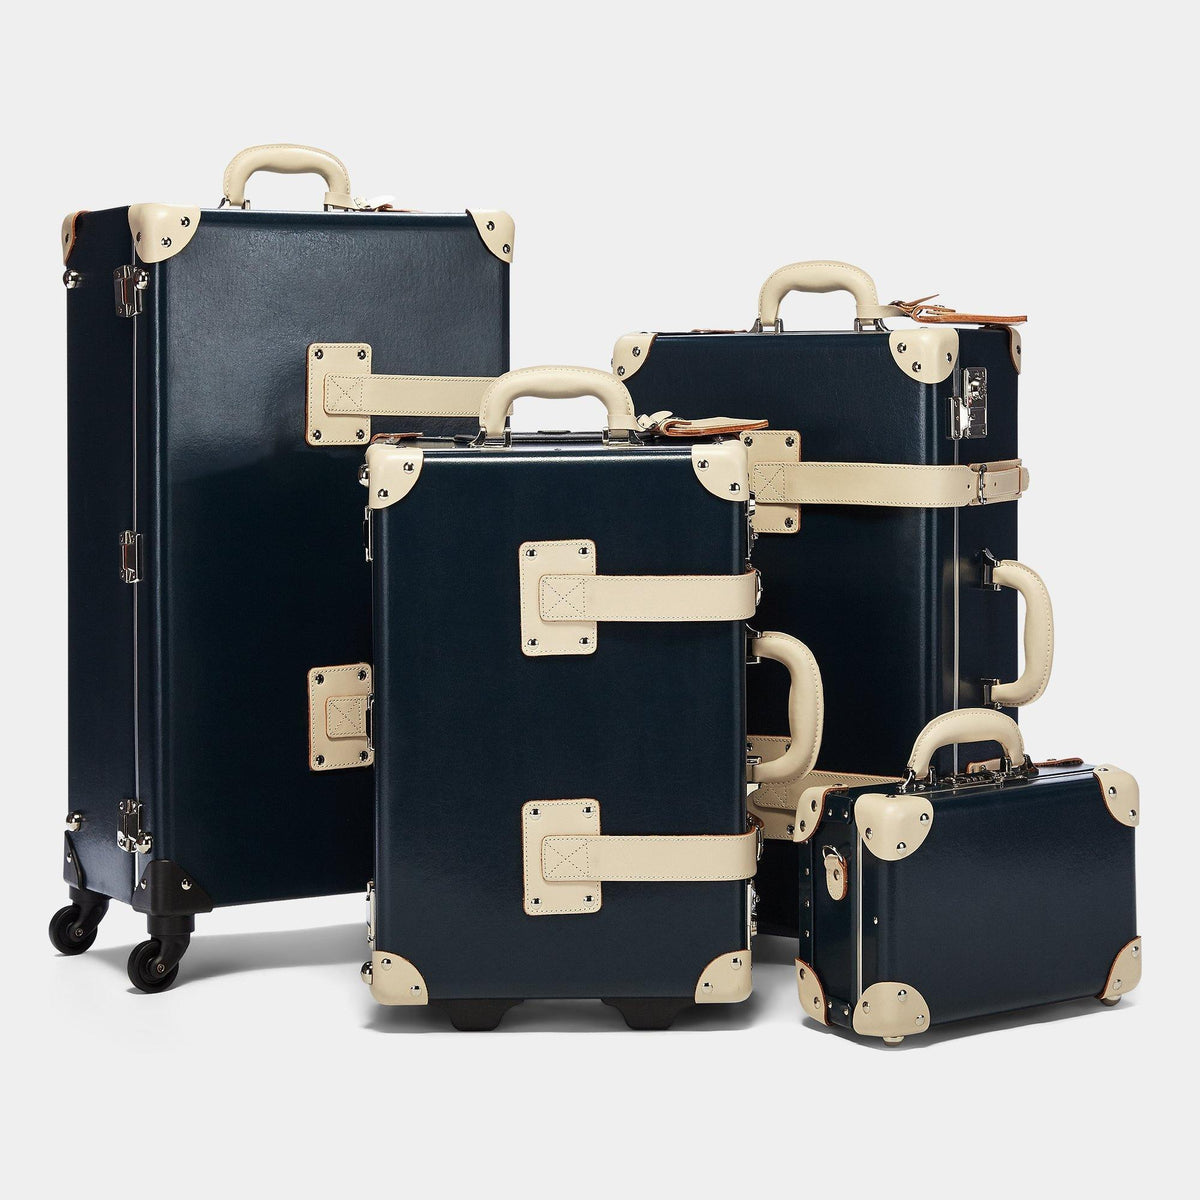 The Anthropologist Vanity in Navy - Vintage Style Leather Case - Alongside matching cases from Anthropologist Navy Collection